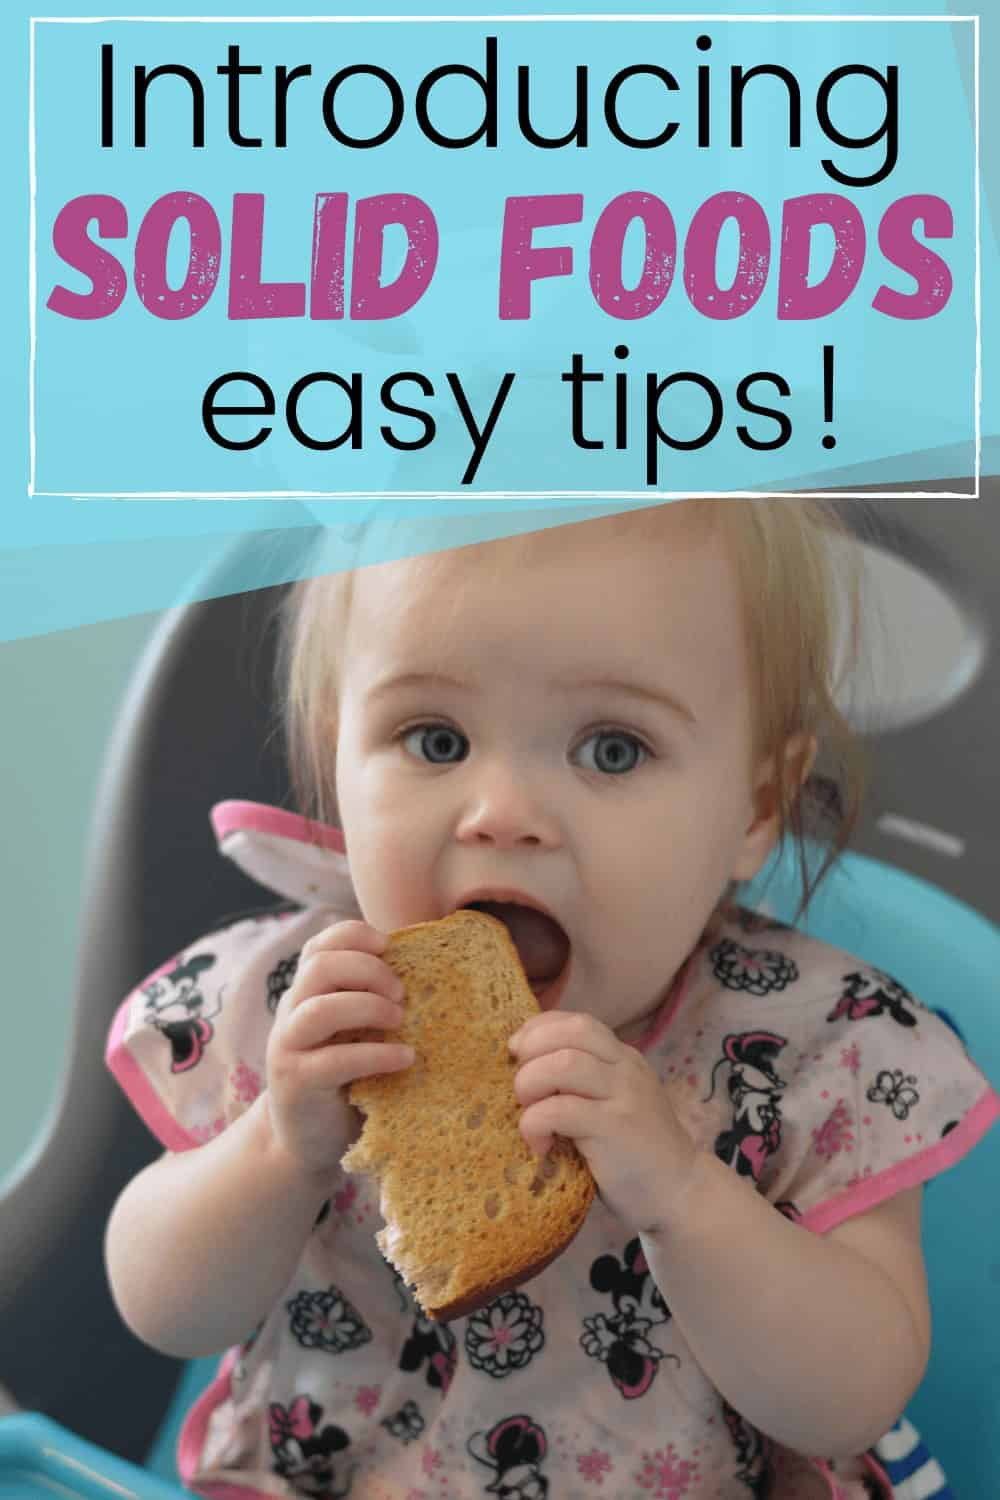 Easy Tips for Introducing Solids to Baby